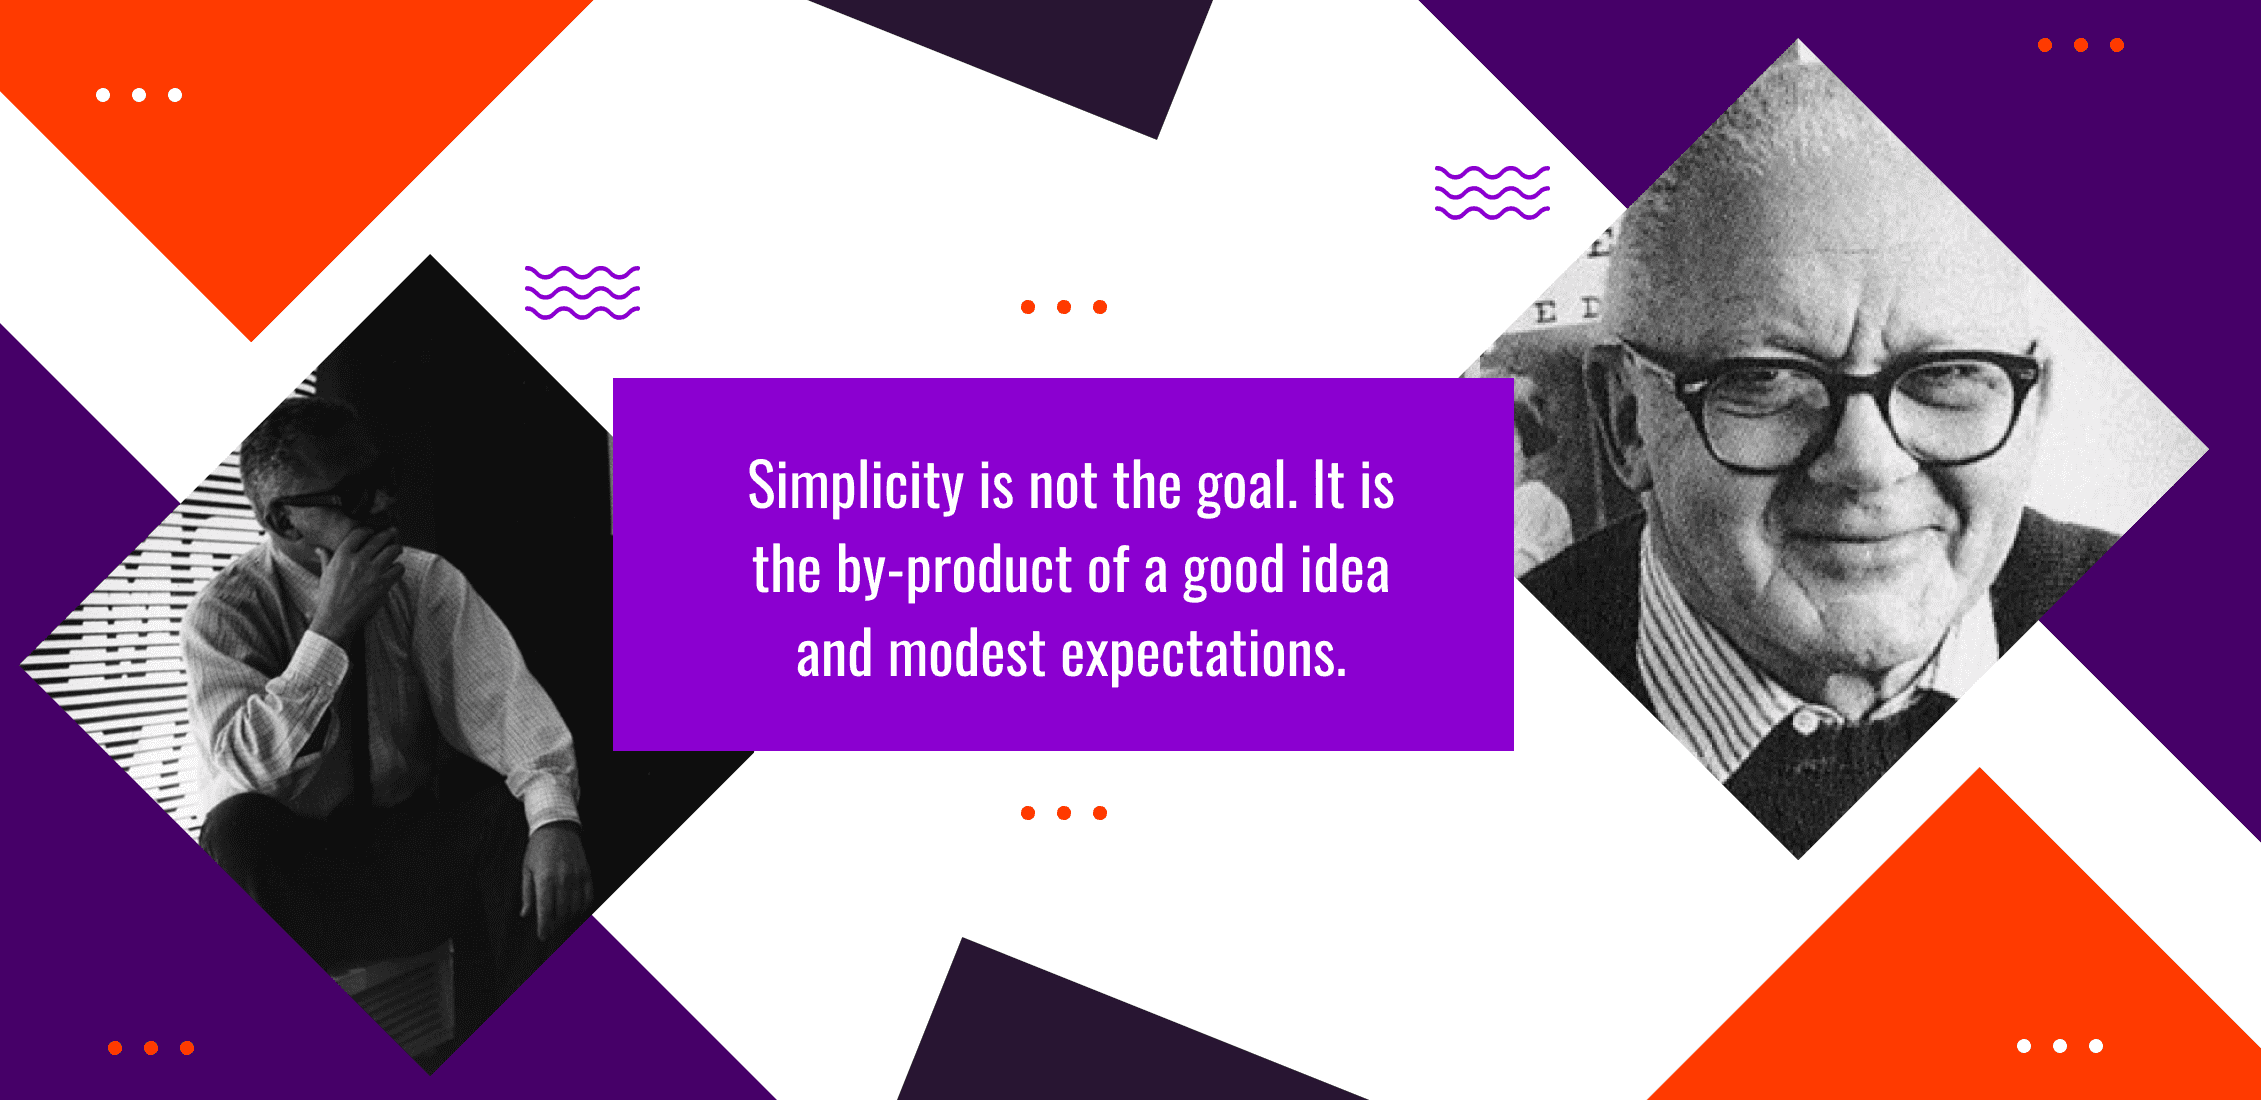 Simplicity is not the goal. It is the by-product of a good idea and modest expectations.